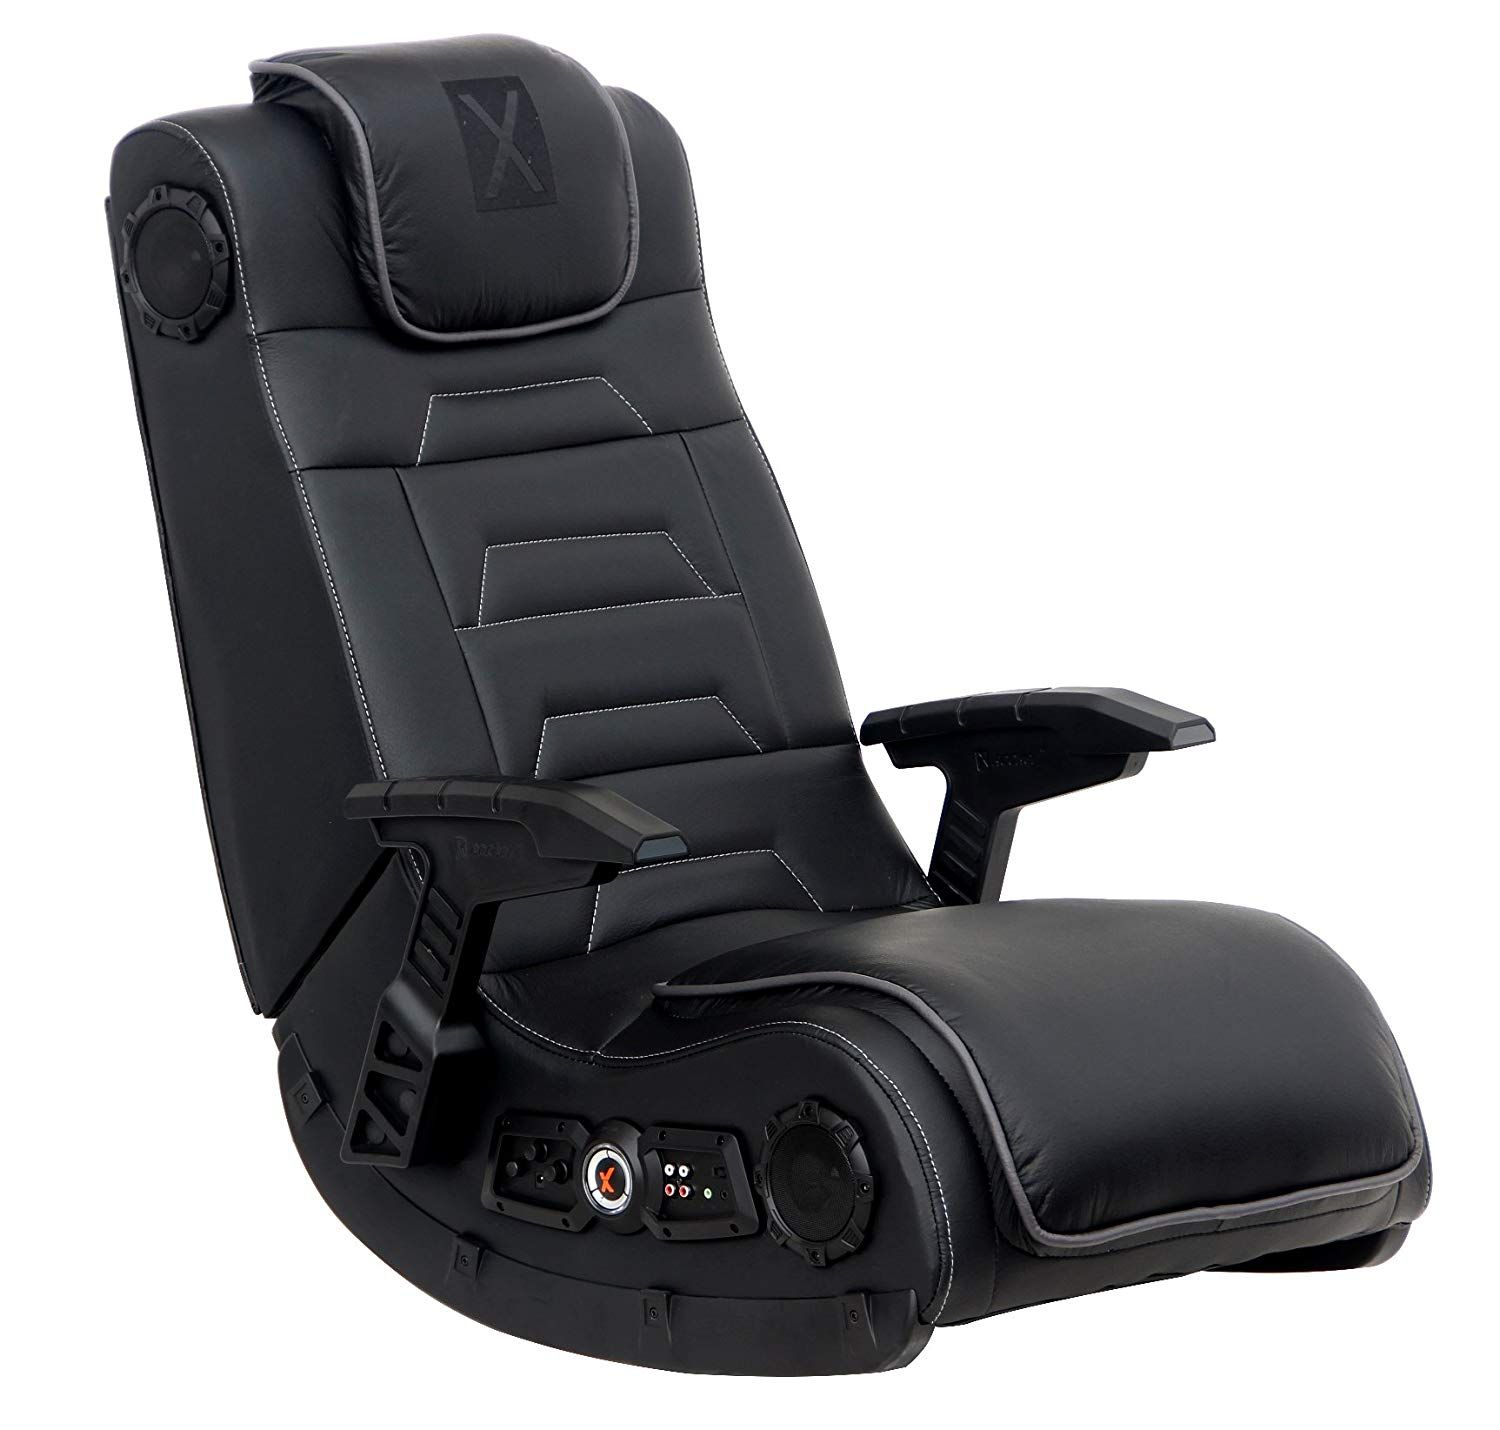 X Rocker 51259 Pro H3 Review Gaming chair, Gamer chair